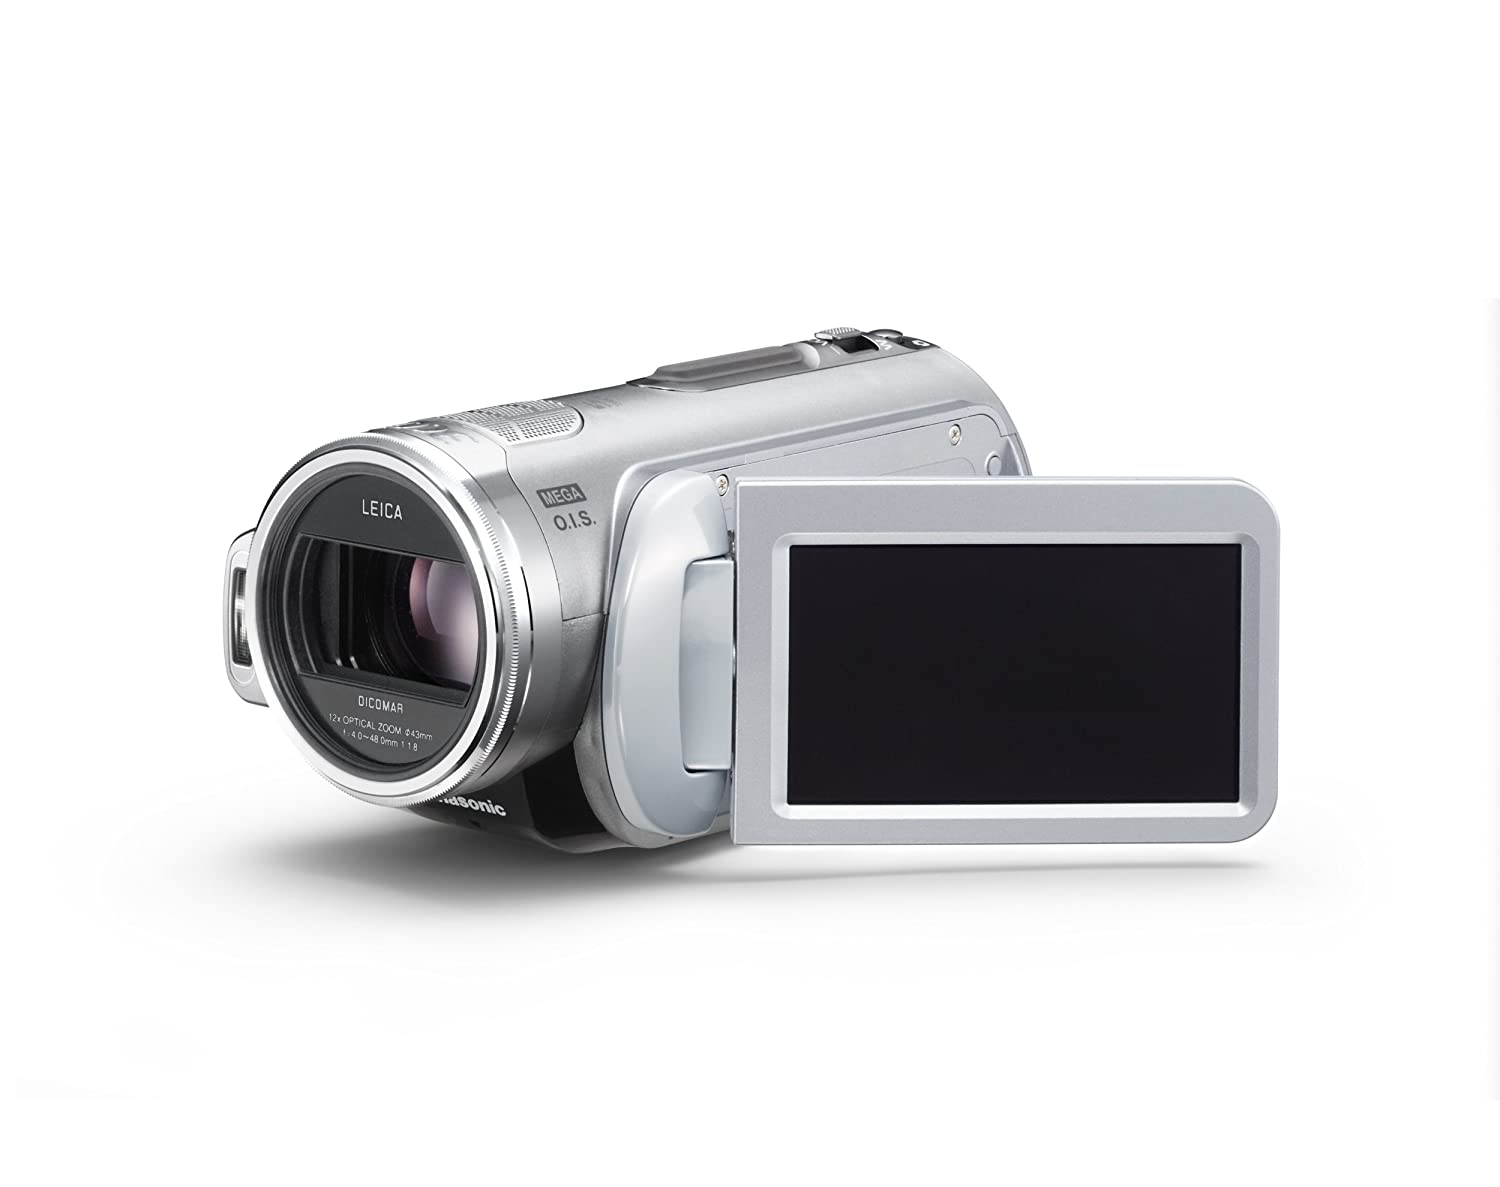 ... 3CCD Flash Memory High Definition Camcorder with 12x Optical Image  Stabilized Zoom (Discontinued by Manufacturer) : Digital Camcorder : Camera  & Photo